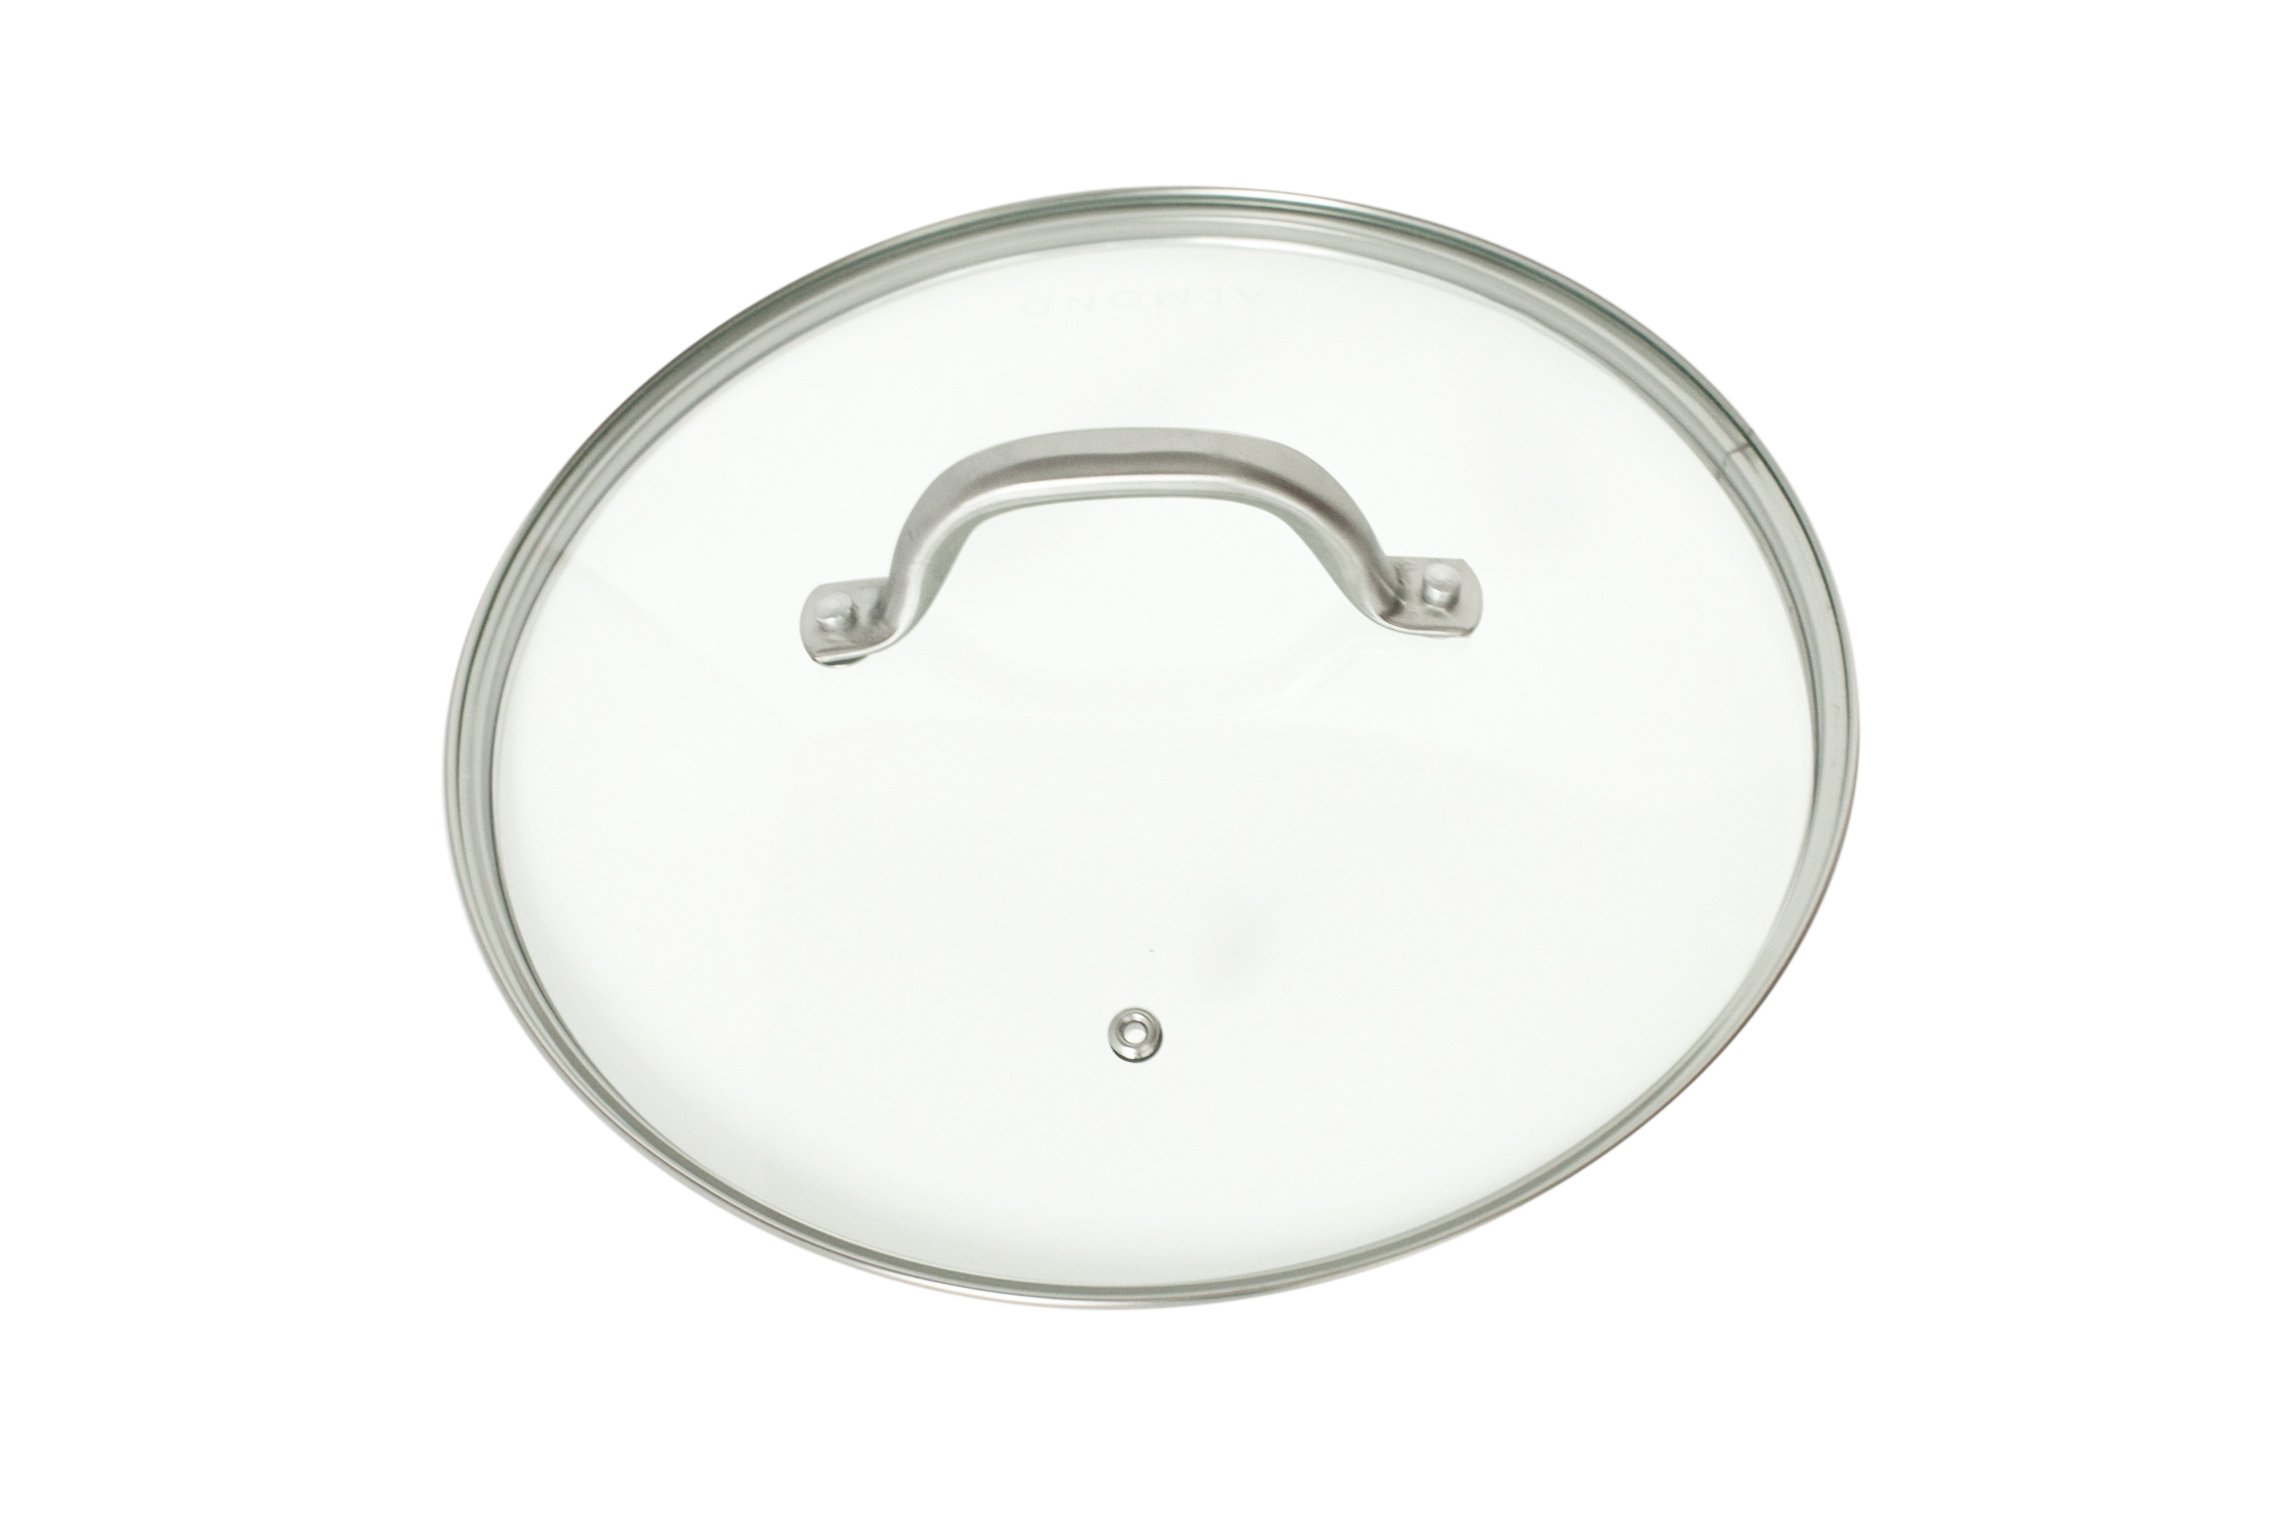 Glass Frying Pan Lid, 10 Inch Tempered Glass Cookware Lid With Vent | Stainless Steel Handle and Rim | Oven Safe and Dishwasher Safe | Perfect for Warming, Steaming, Simmering, and Braising.